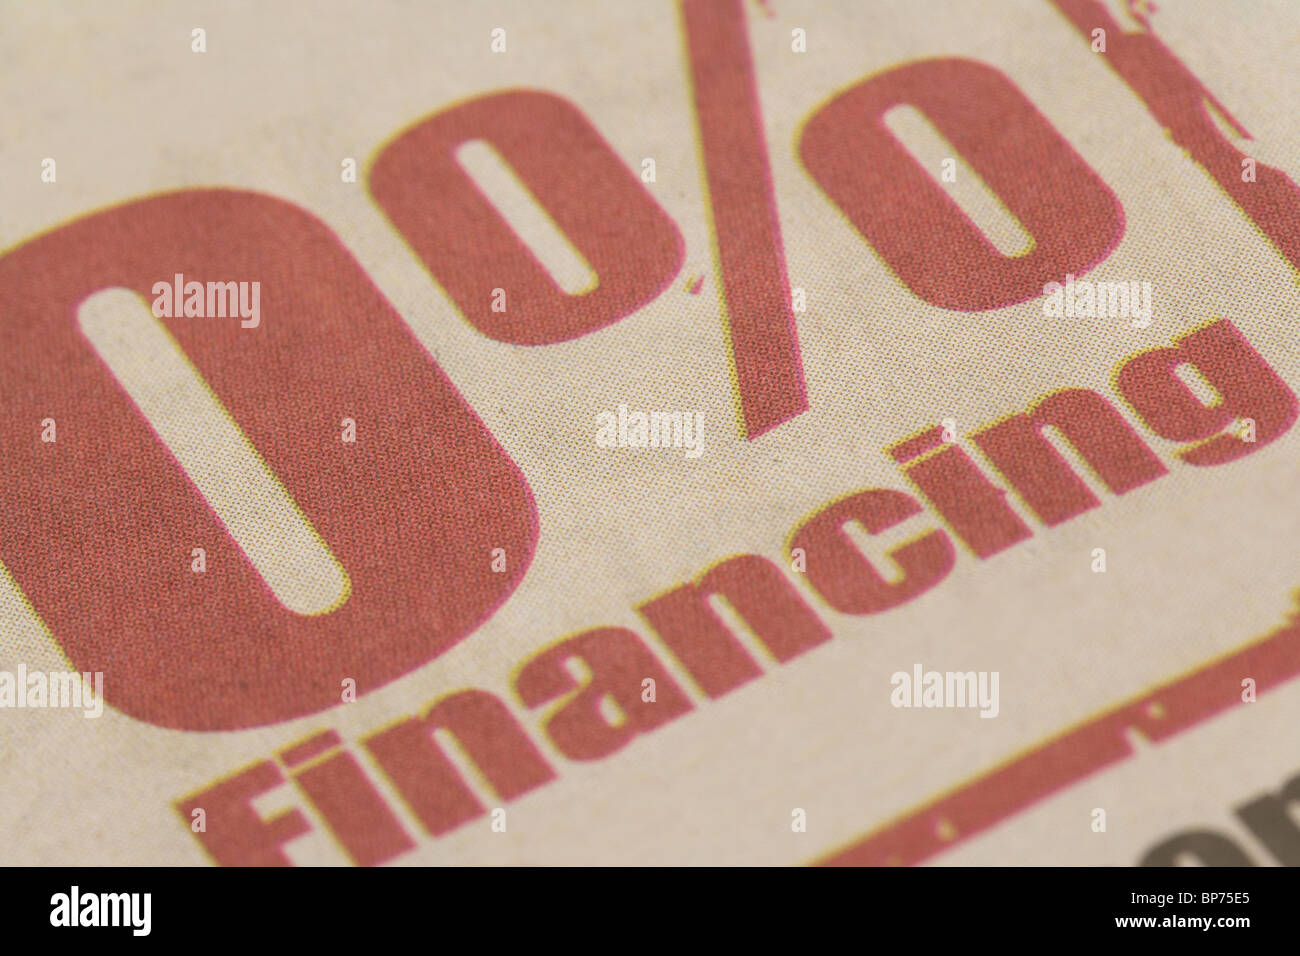 low financing rate, close up - Stock Image